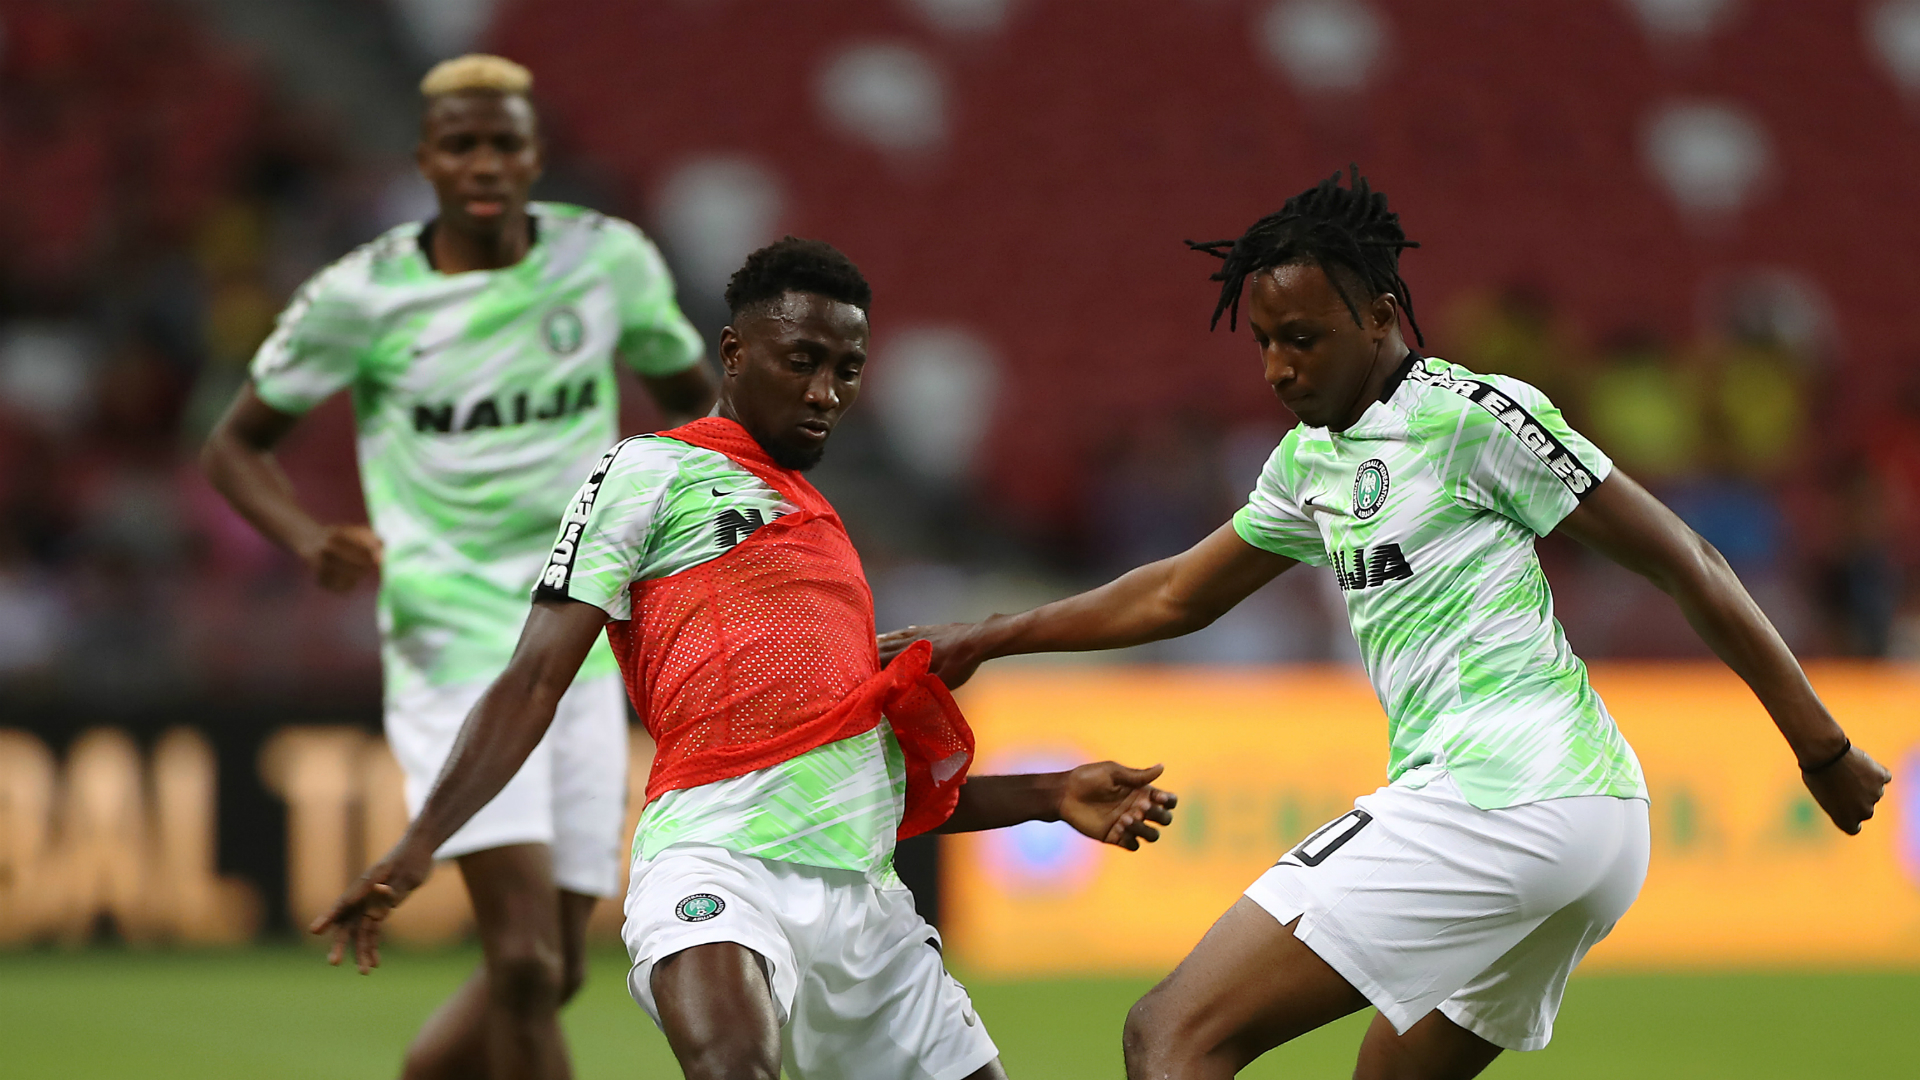 Afcon 2021 Qualifiers: Nigeria prepare for Lesotho clash